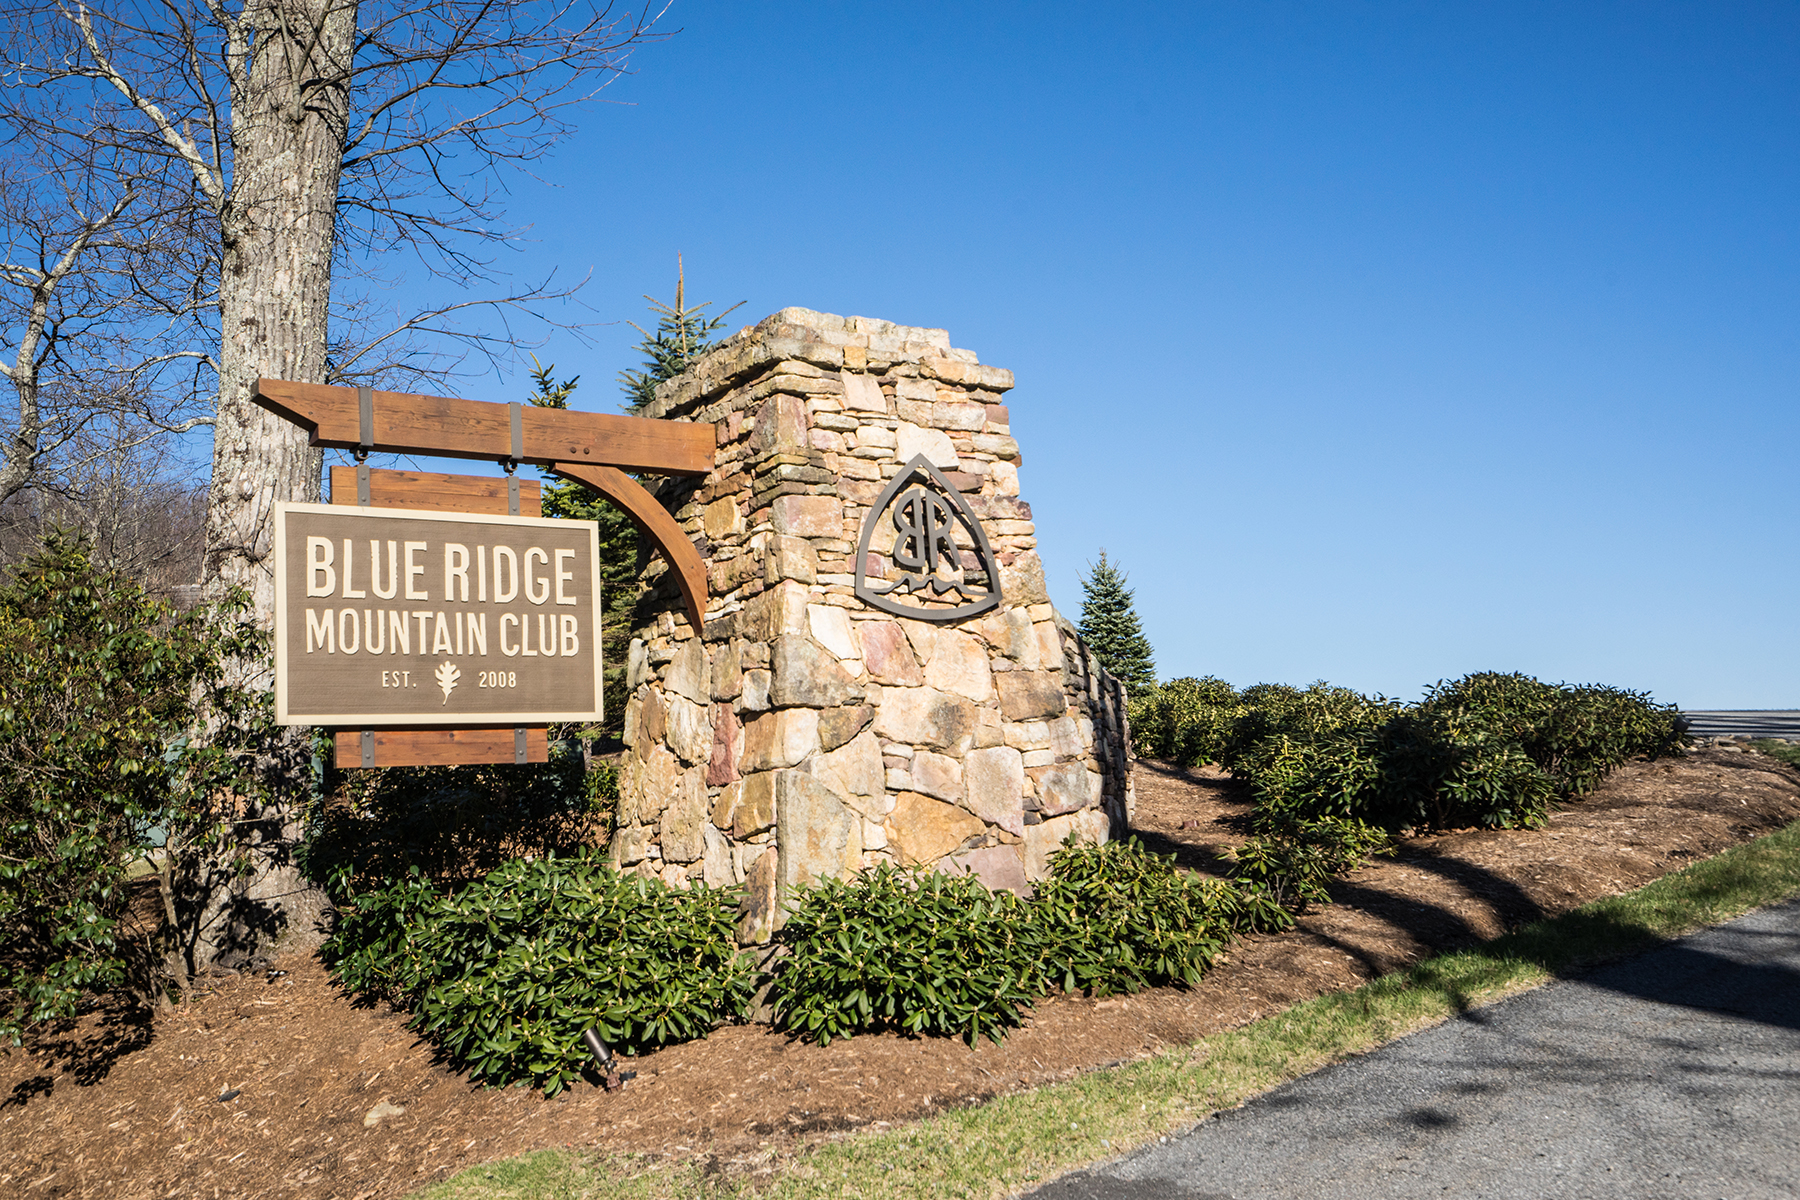 BLUE RIDGE MOUNTAIN CLUB - BOONE Lot 1304  Reynolds Pkwy Blowing Rock, Carolina Del Norte 28607 Estados Unidos